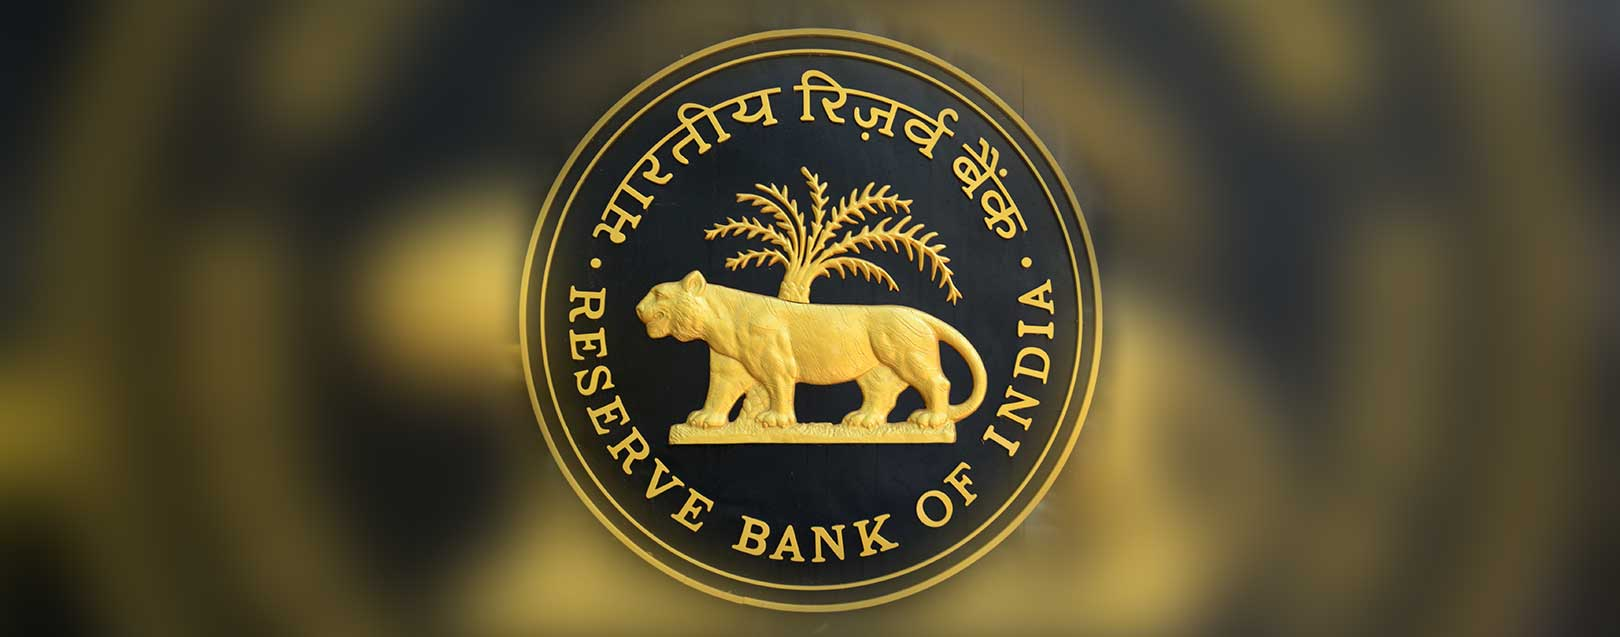 PDMA to replace RBI as Natl. debt manager by Q4'18